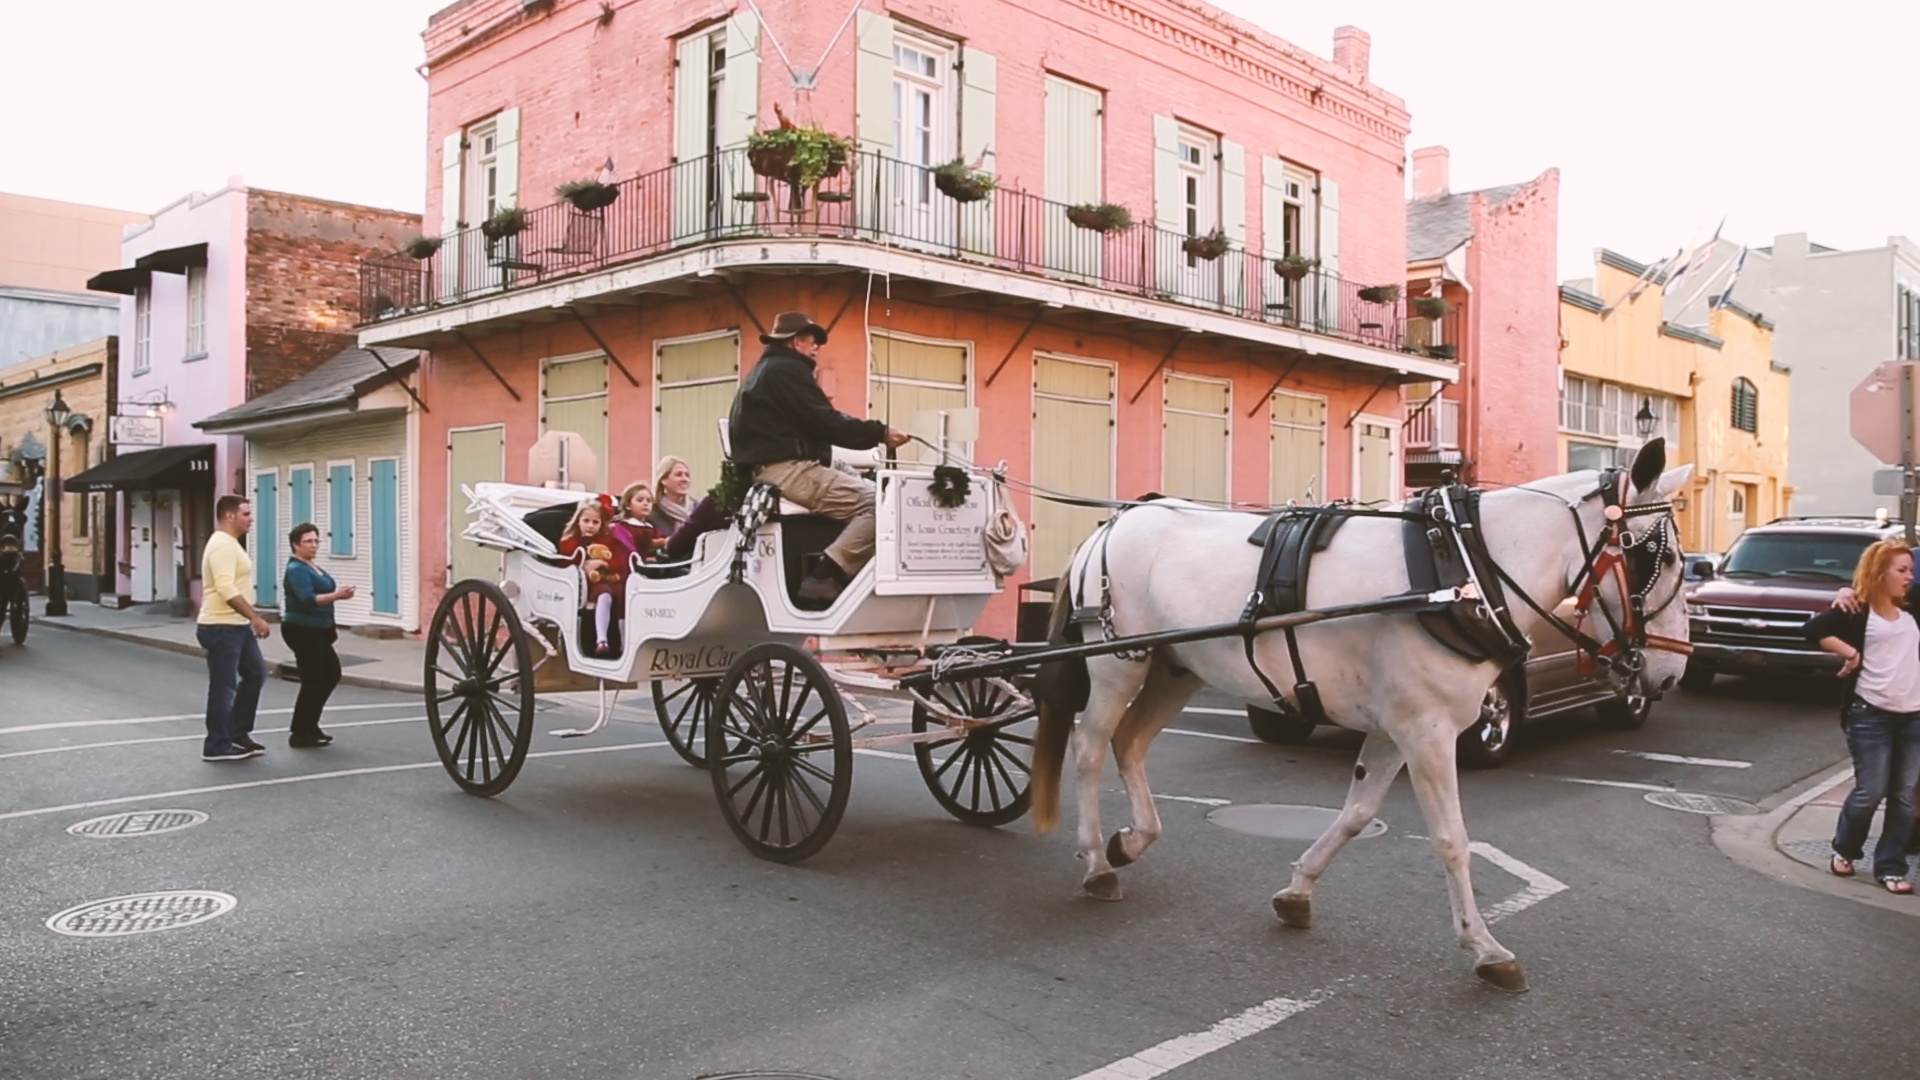 New Orleans provides the most colorful, vibrant backdrops for weddings.